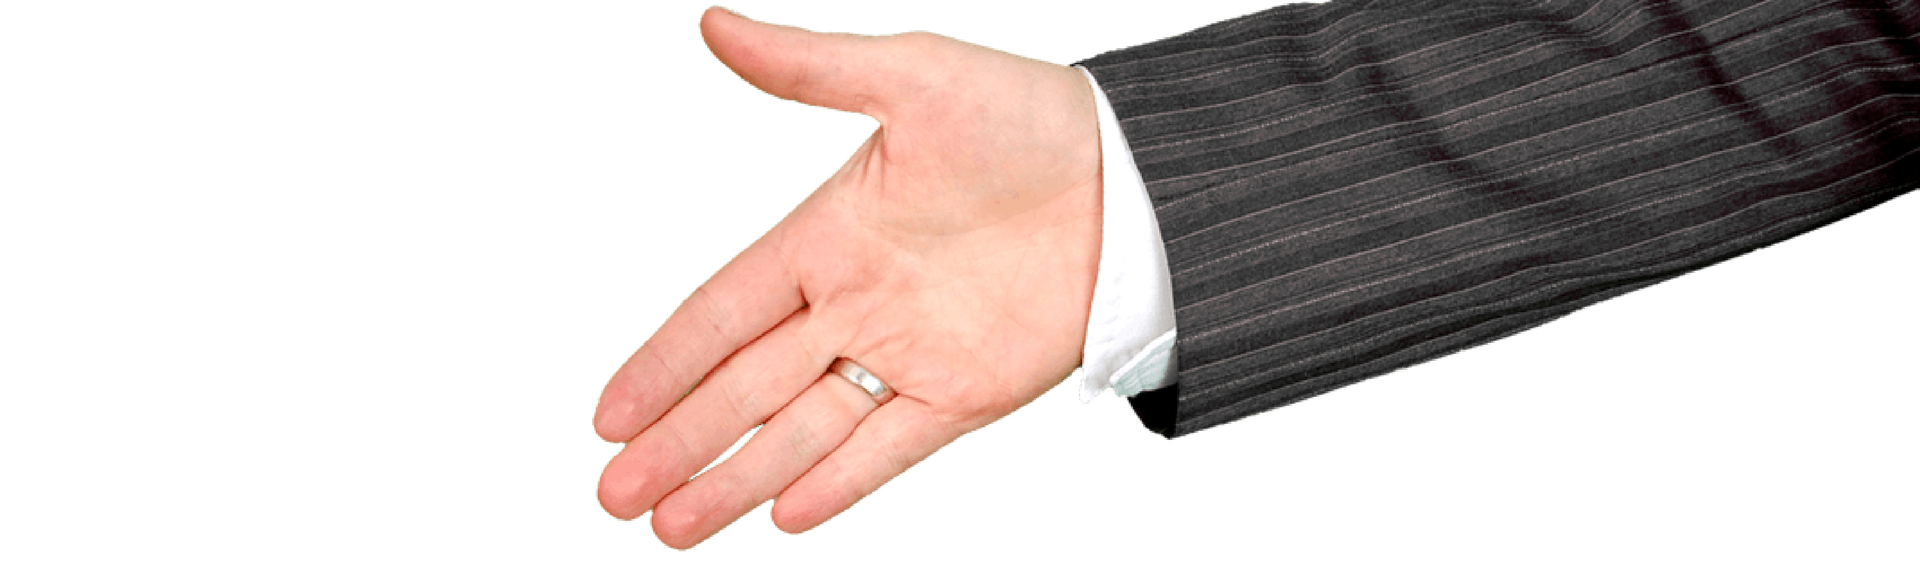 Hiring manager extends hand for handshake interviewing candidate found through FingerCheck's applicant tracking.